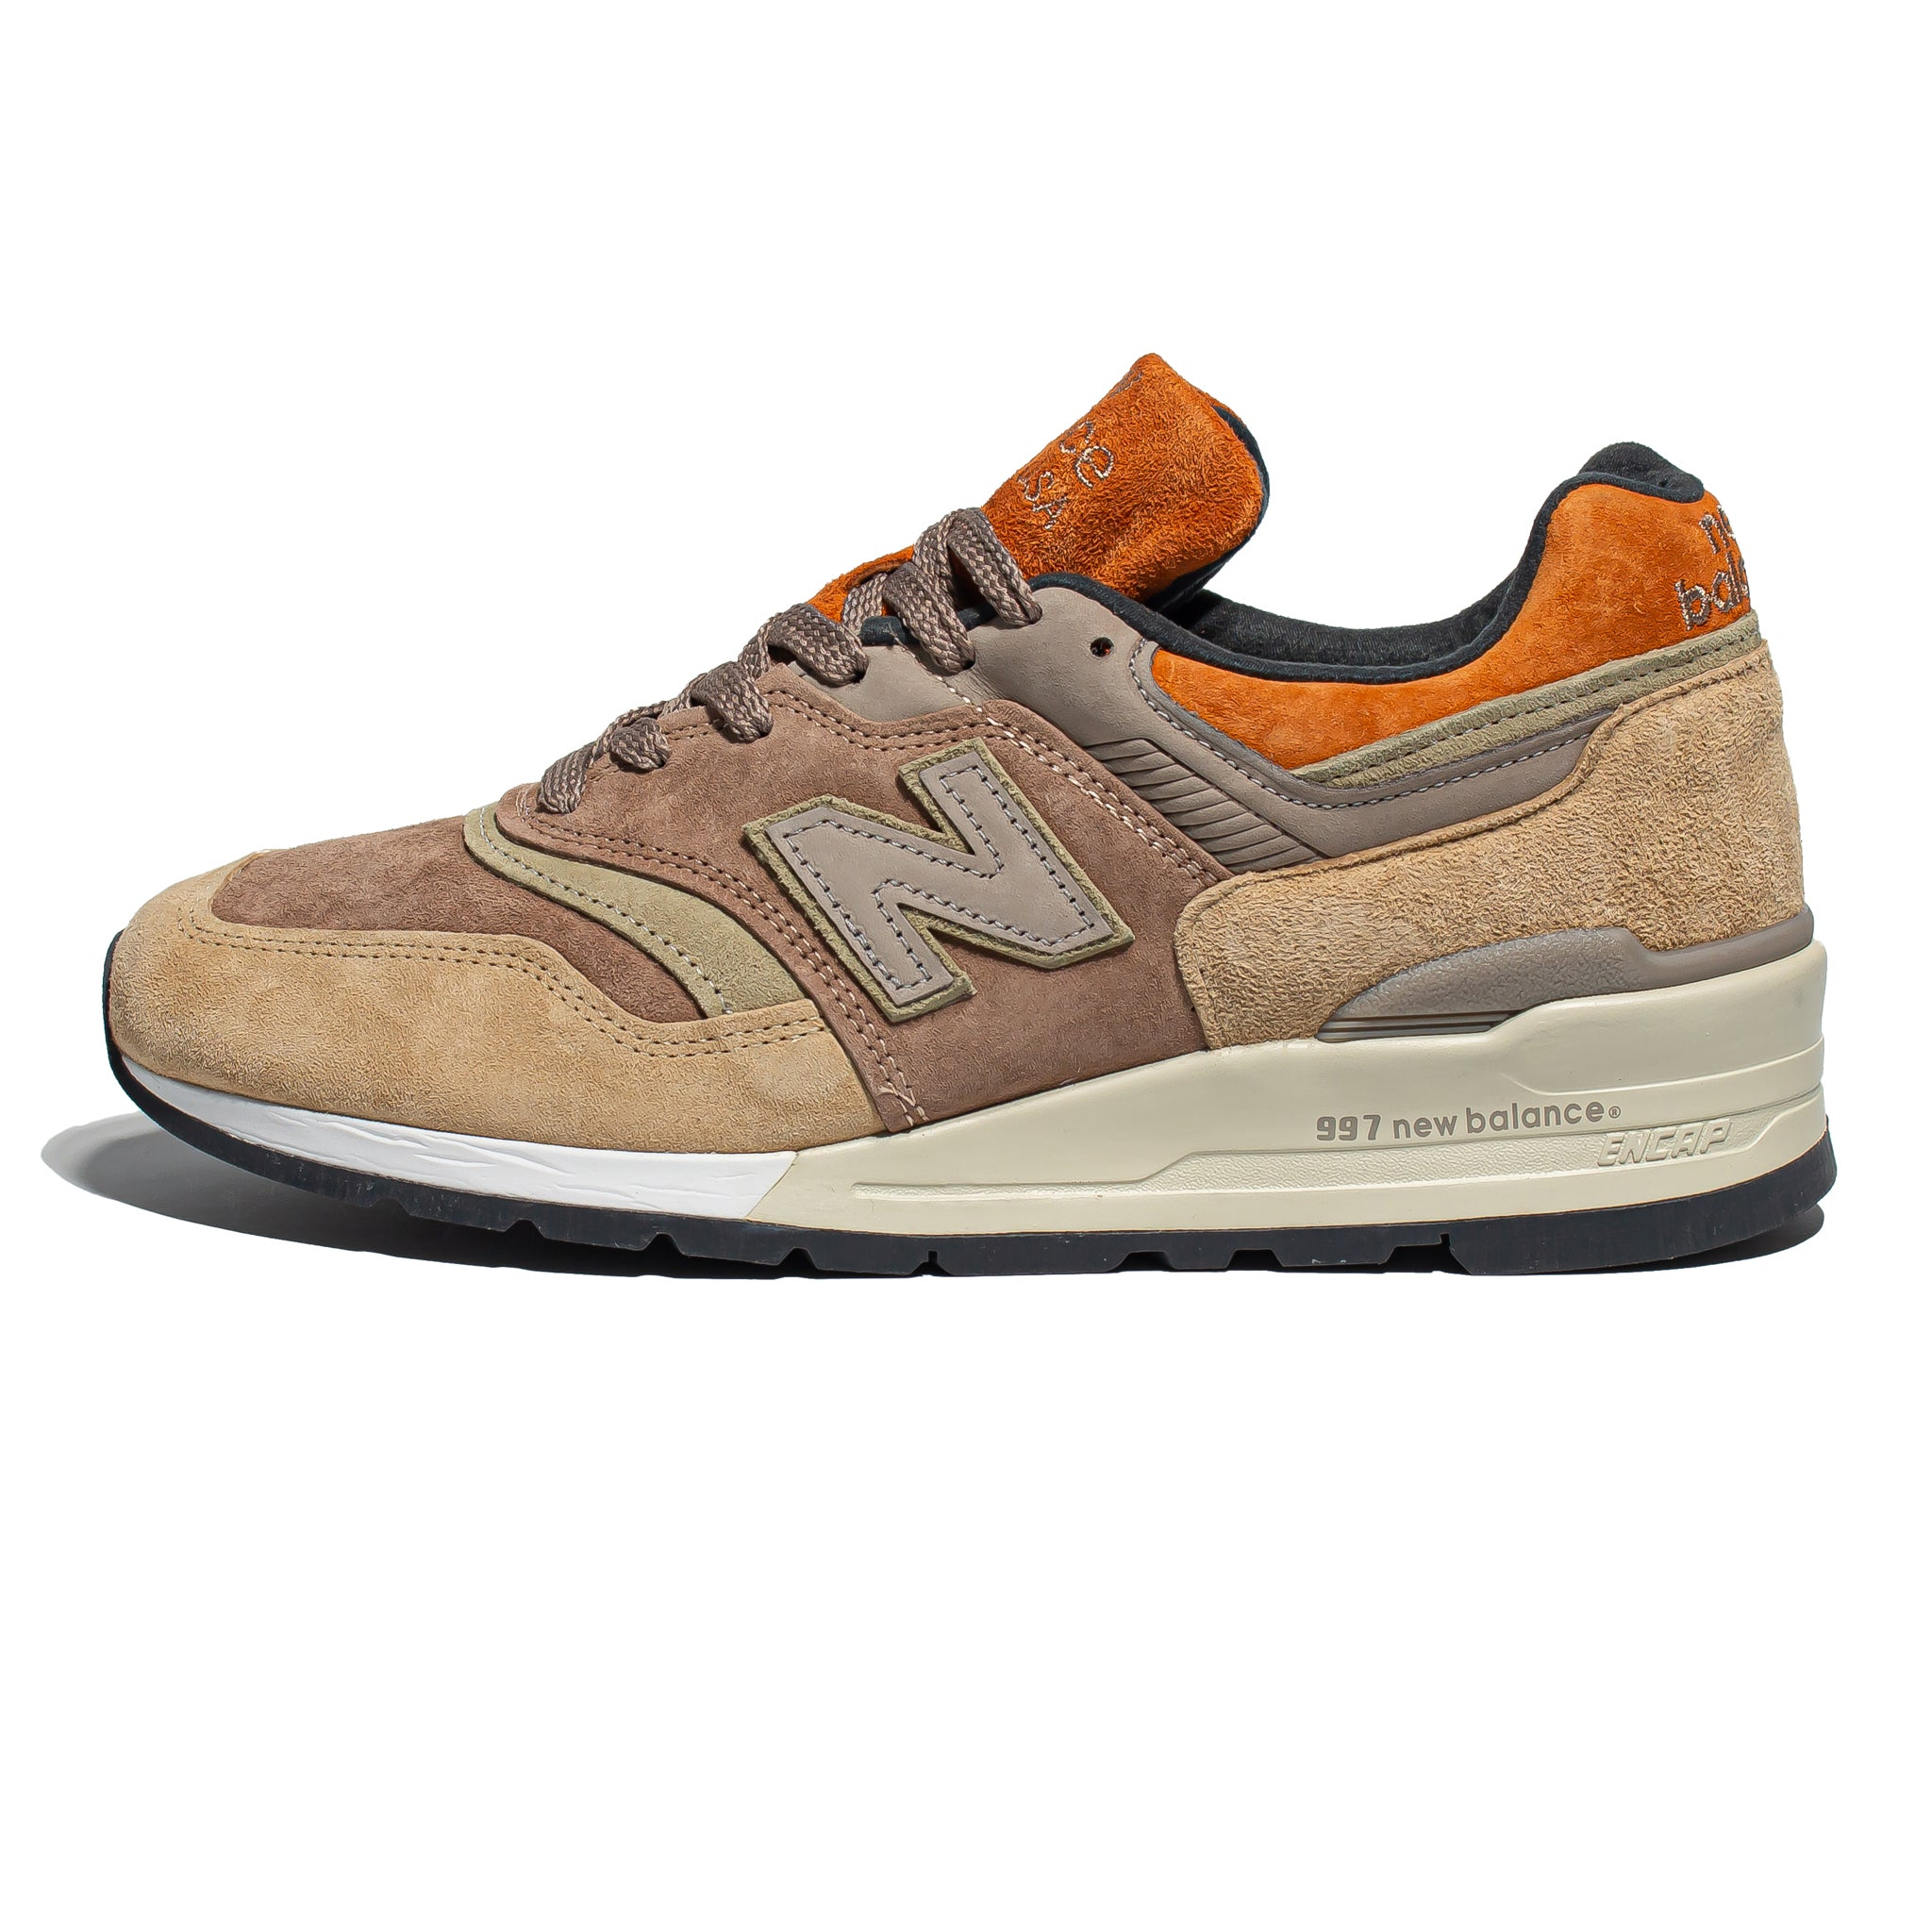 New Balance 'Made in USA' M997NAJ